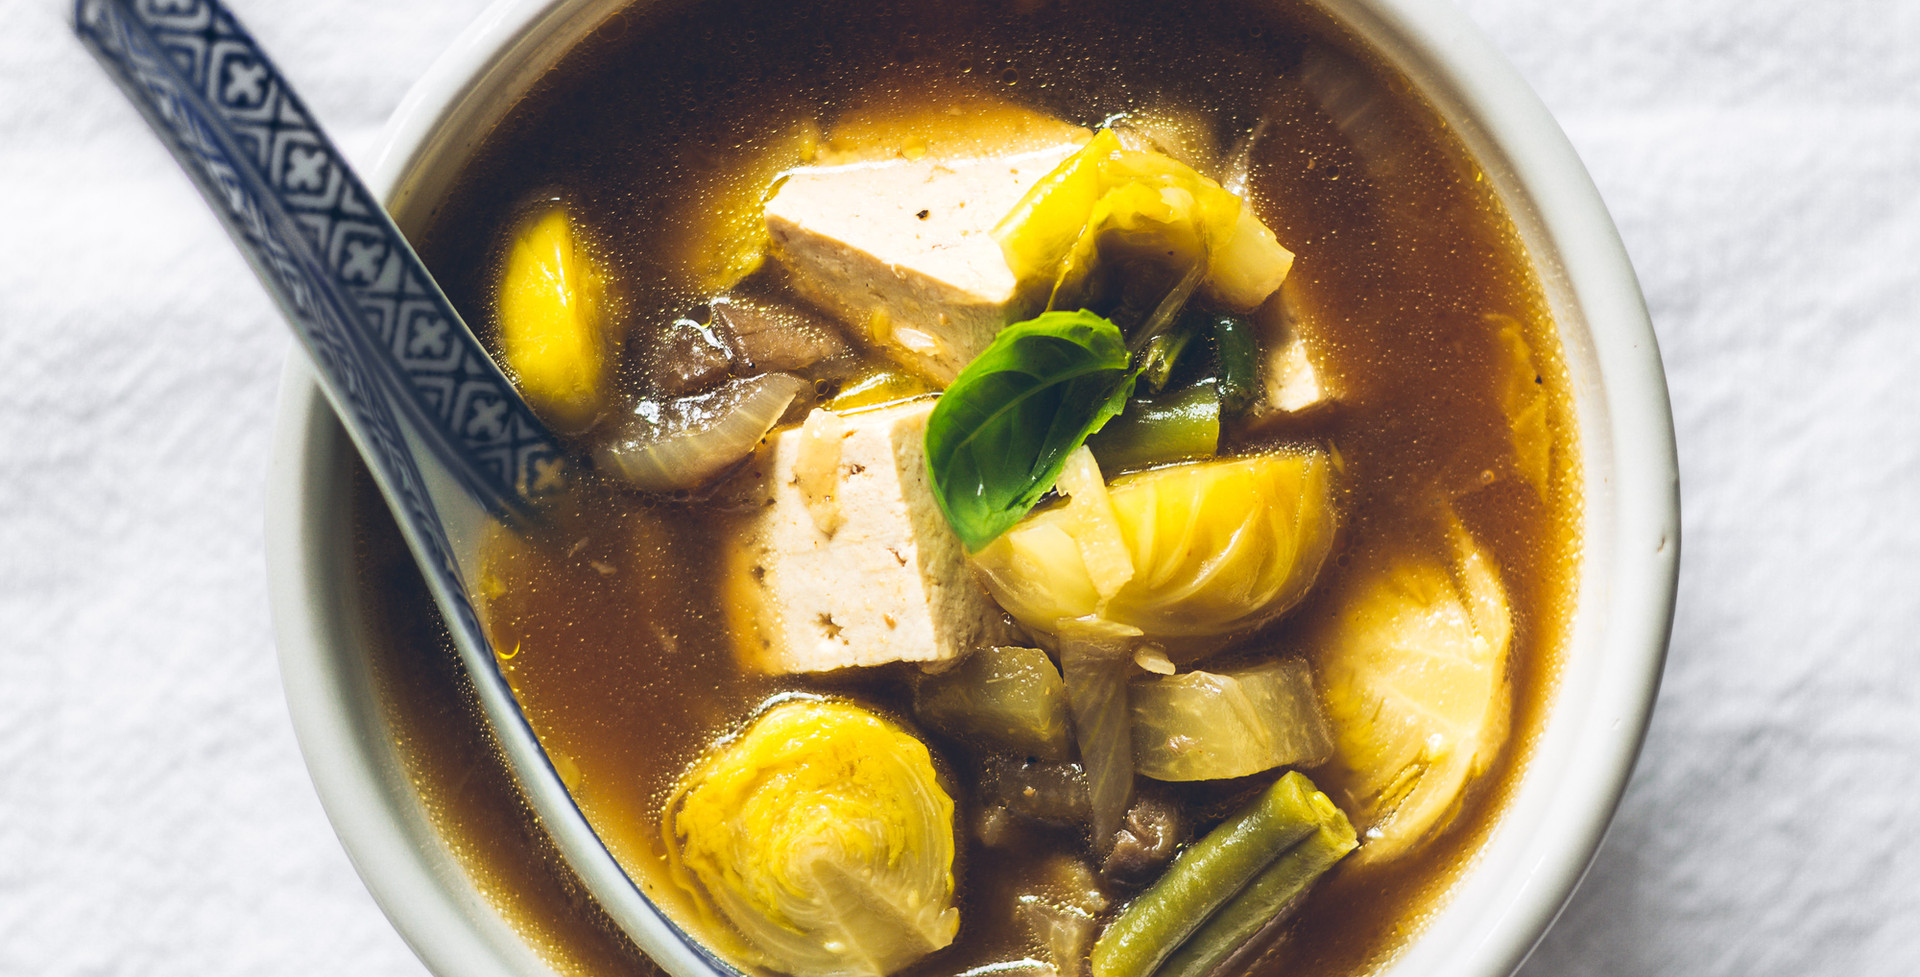 Wholesome miso soup with kohlrabi and Brussels sprouts